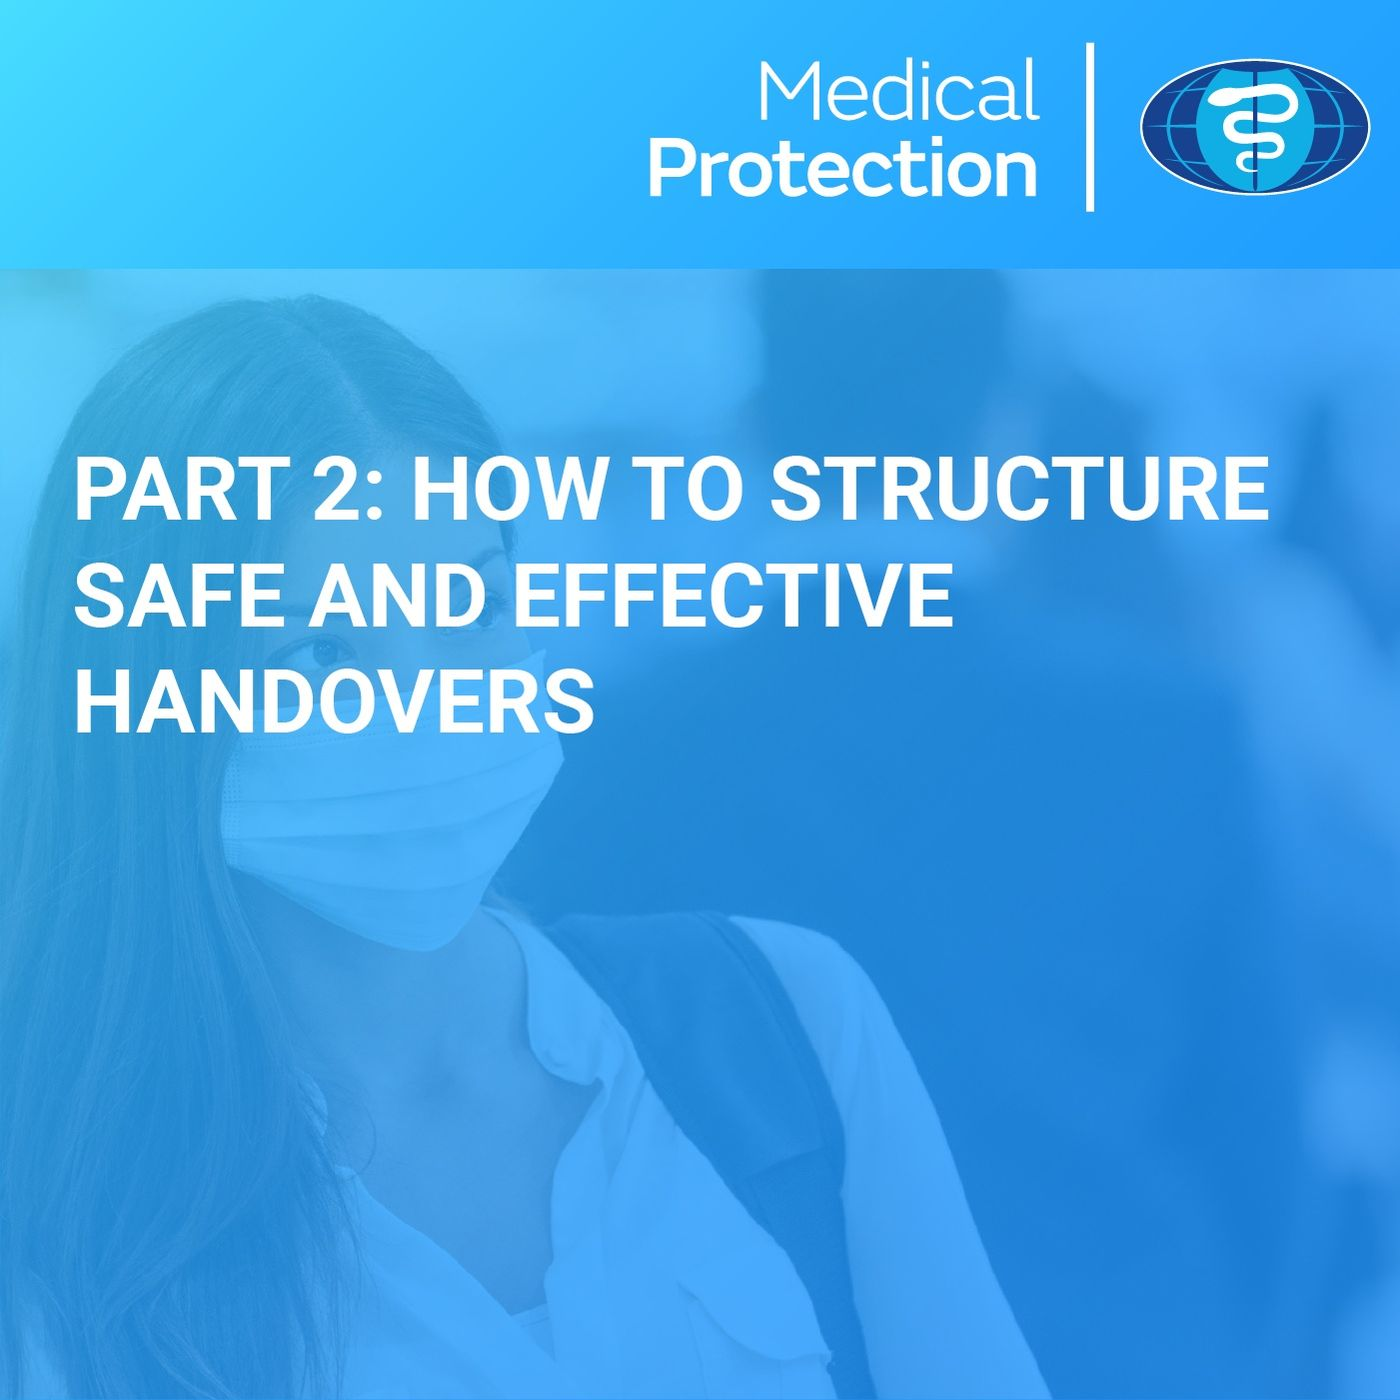 Handovers part 2: How to structure safe and effective handovers